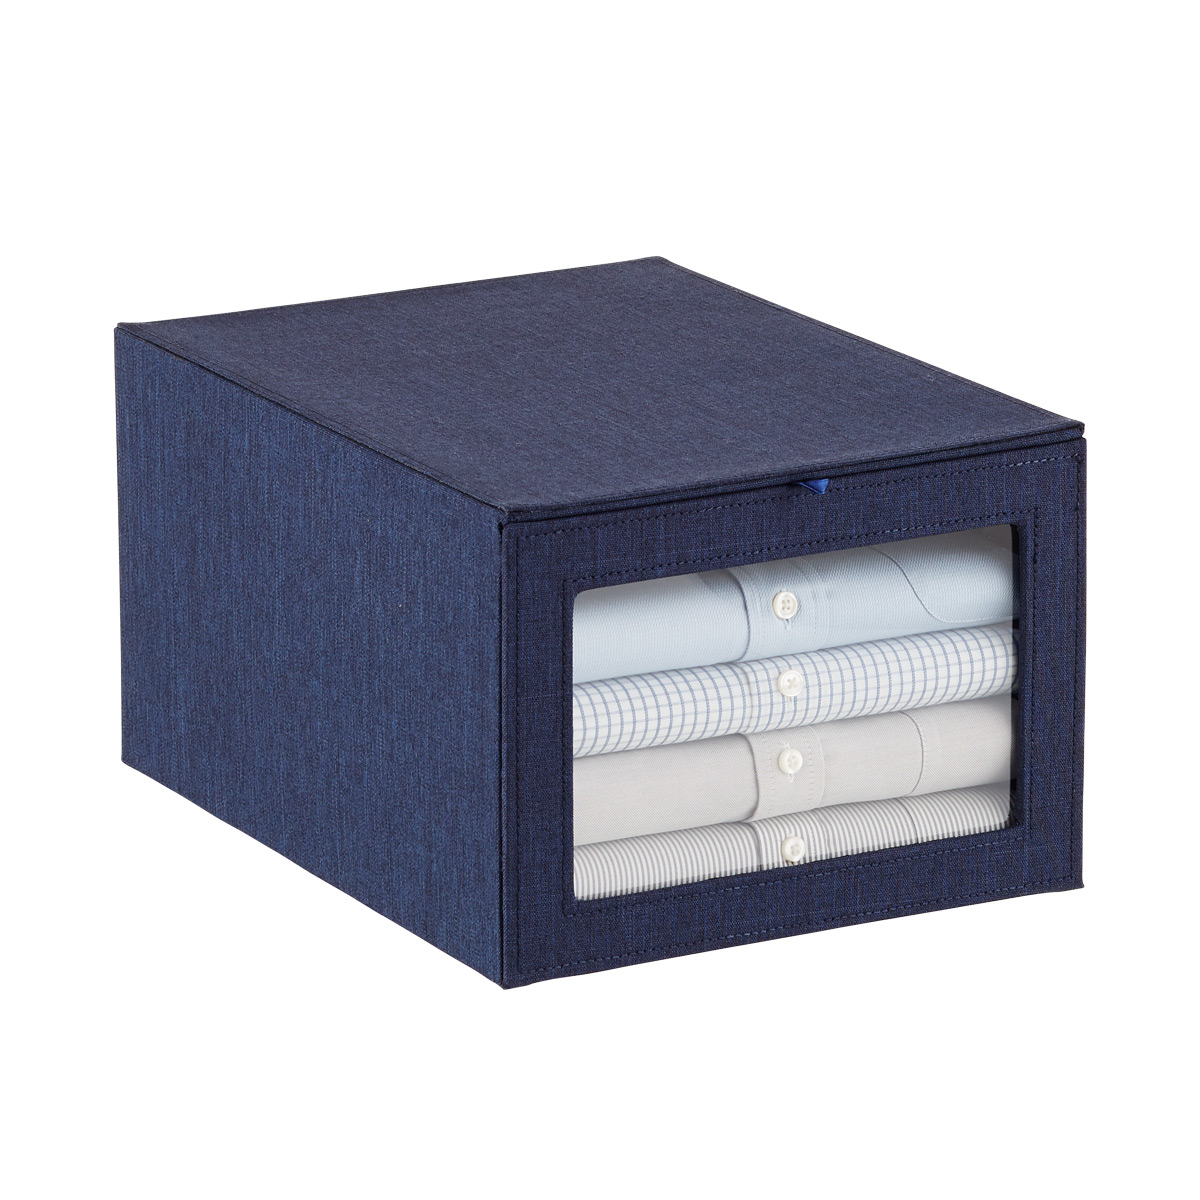 Navy Cambridge Drop-Front Shirt Box